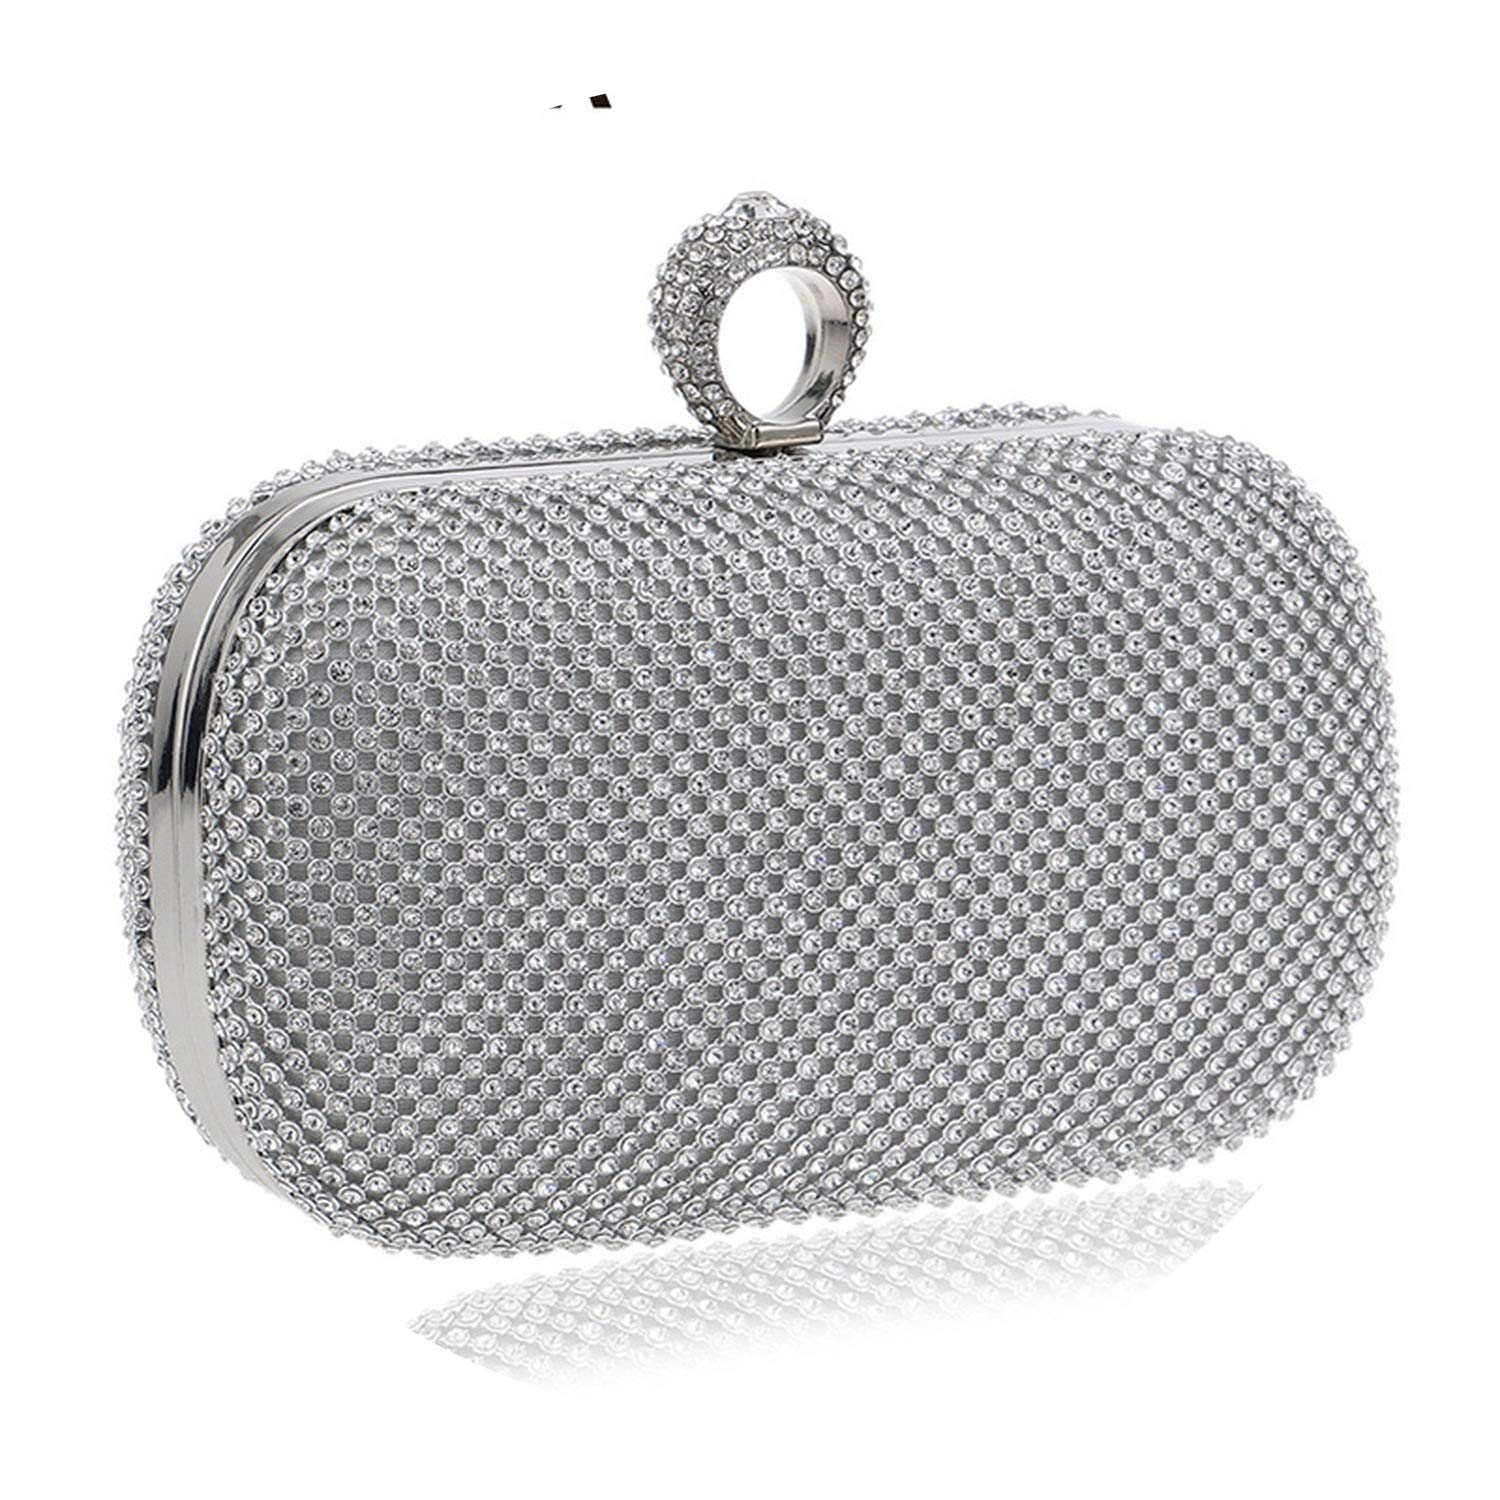 Glittering time Evening Clutch Bags Diamond-Studded Evening Bag,YM1000Gold,China